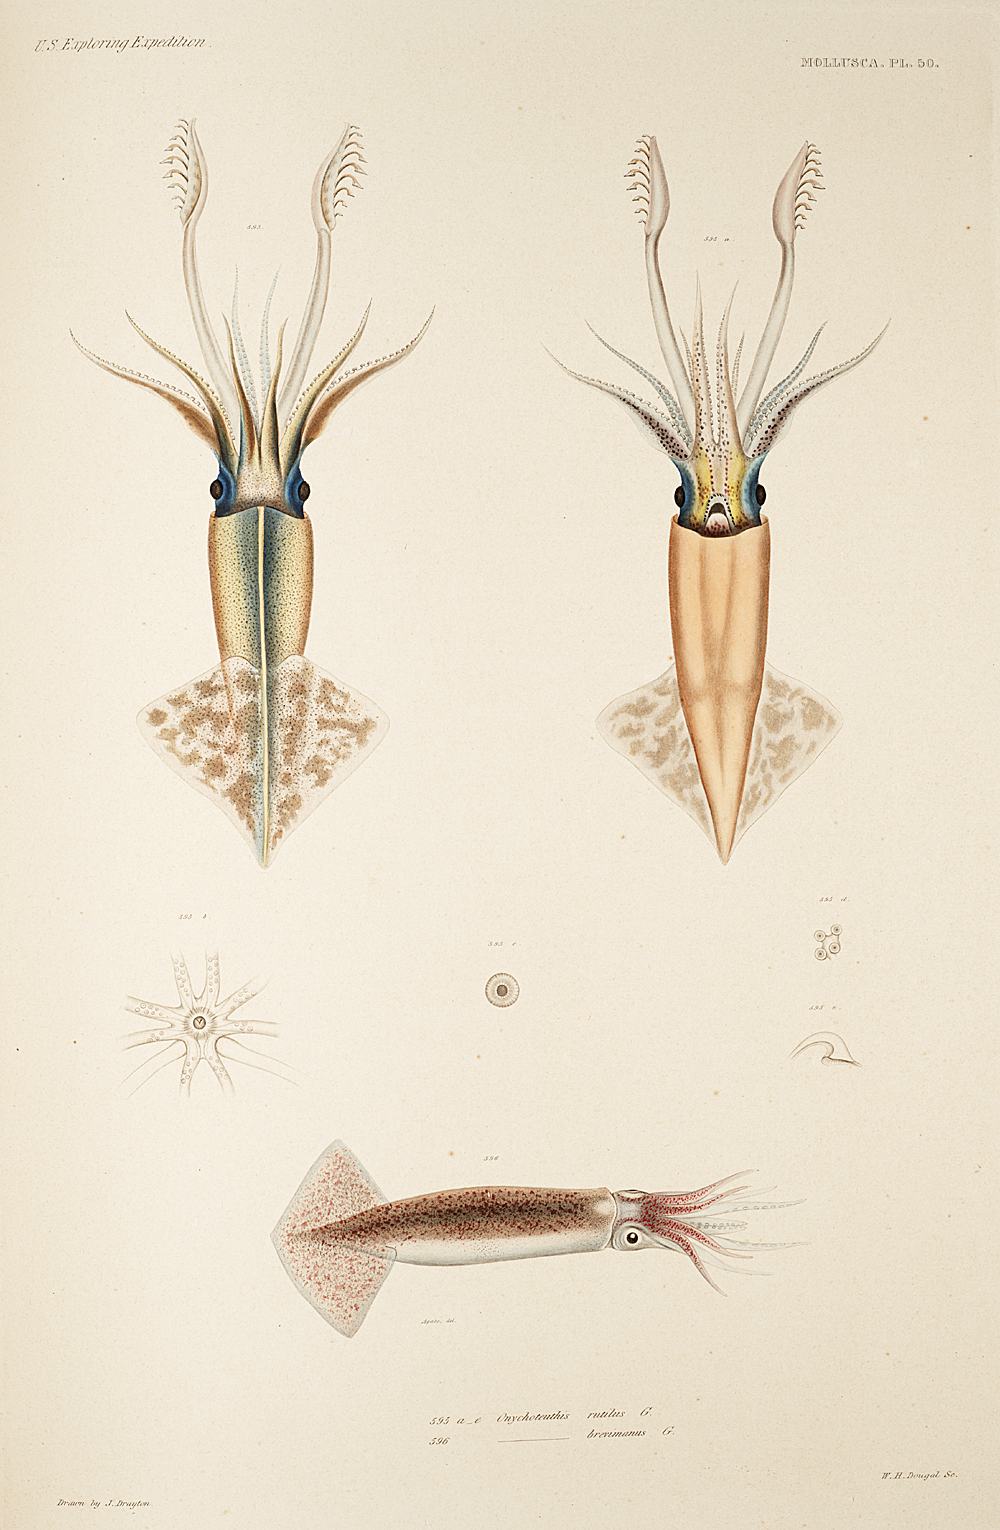 Mollusca, Pl. 50,  Image number:sil19-18-121b